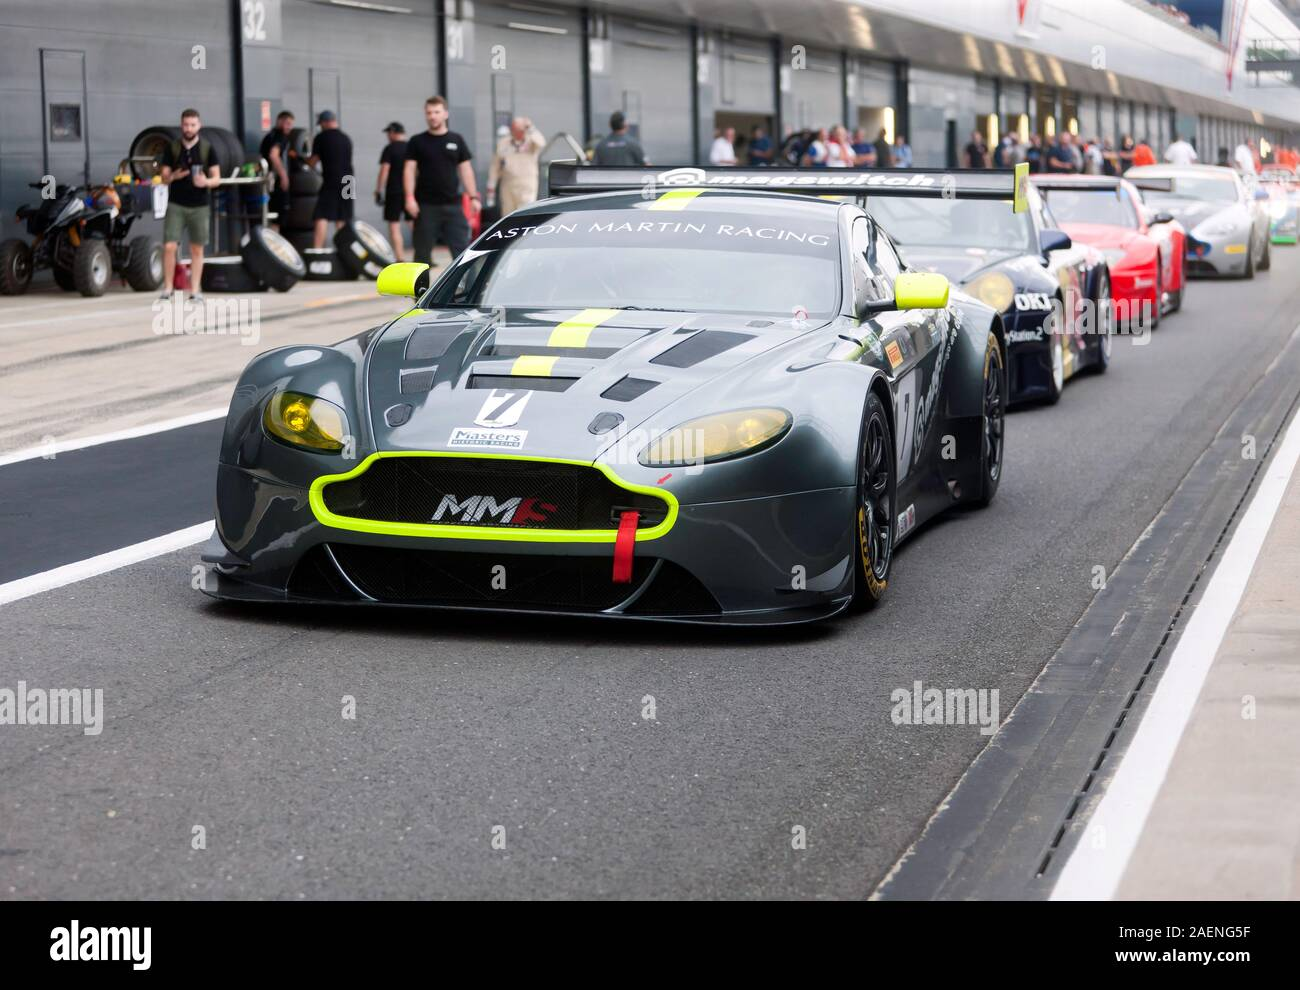 An Aston Martin Vantage V12 Leads A Line Of Race Cars During The Aston Martin Trophy For Masters Endurance Legends At The 2019 Silverstone Classic Stock Photo Alamy